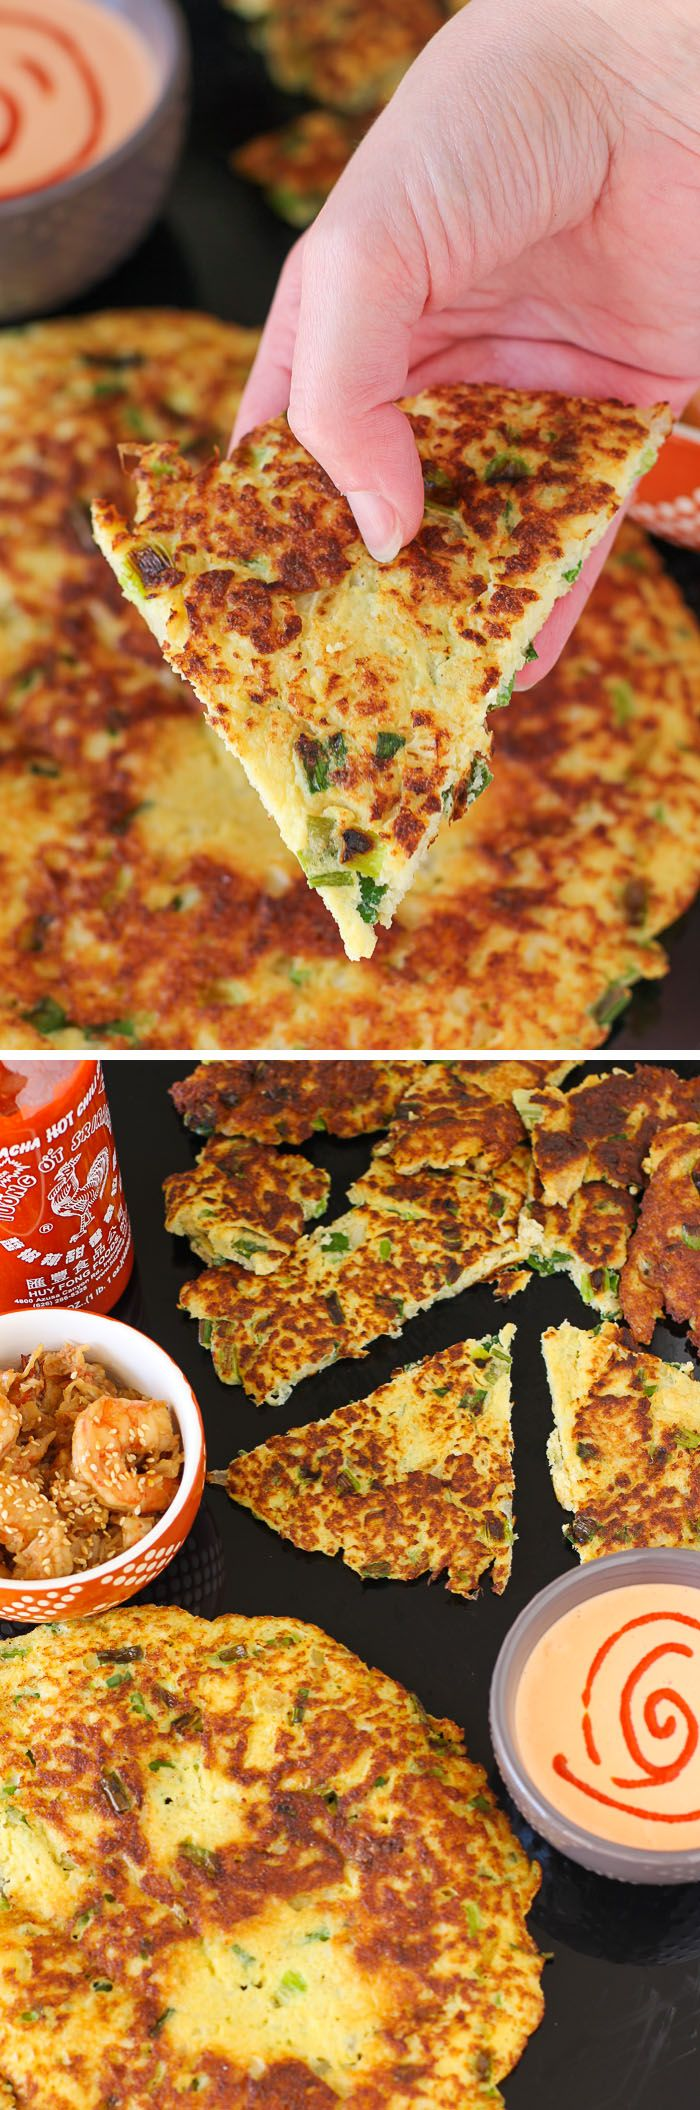 Paleo Scallion Pancake: An AWESOME delicious and healthy recipe! So good when served with sesame shrimp and Sriracha aioli. Must-make!